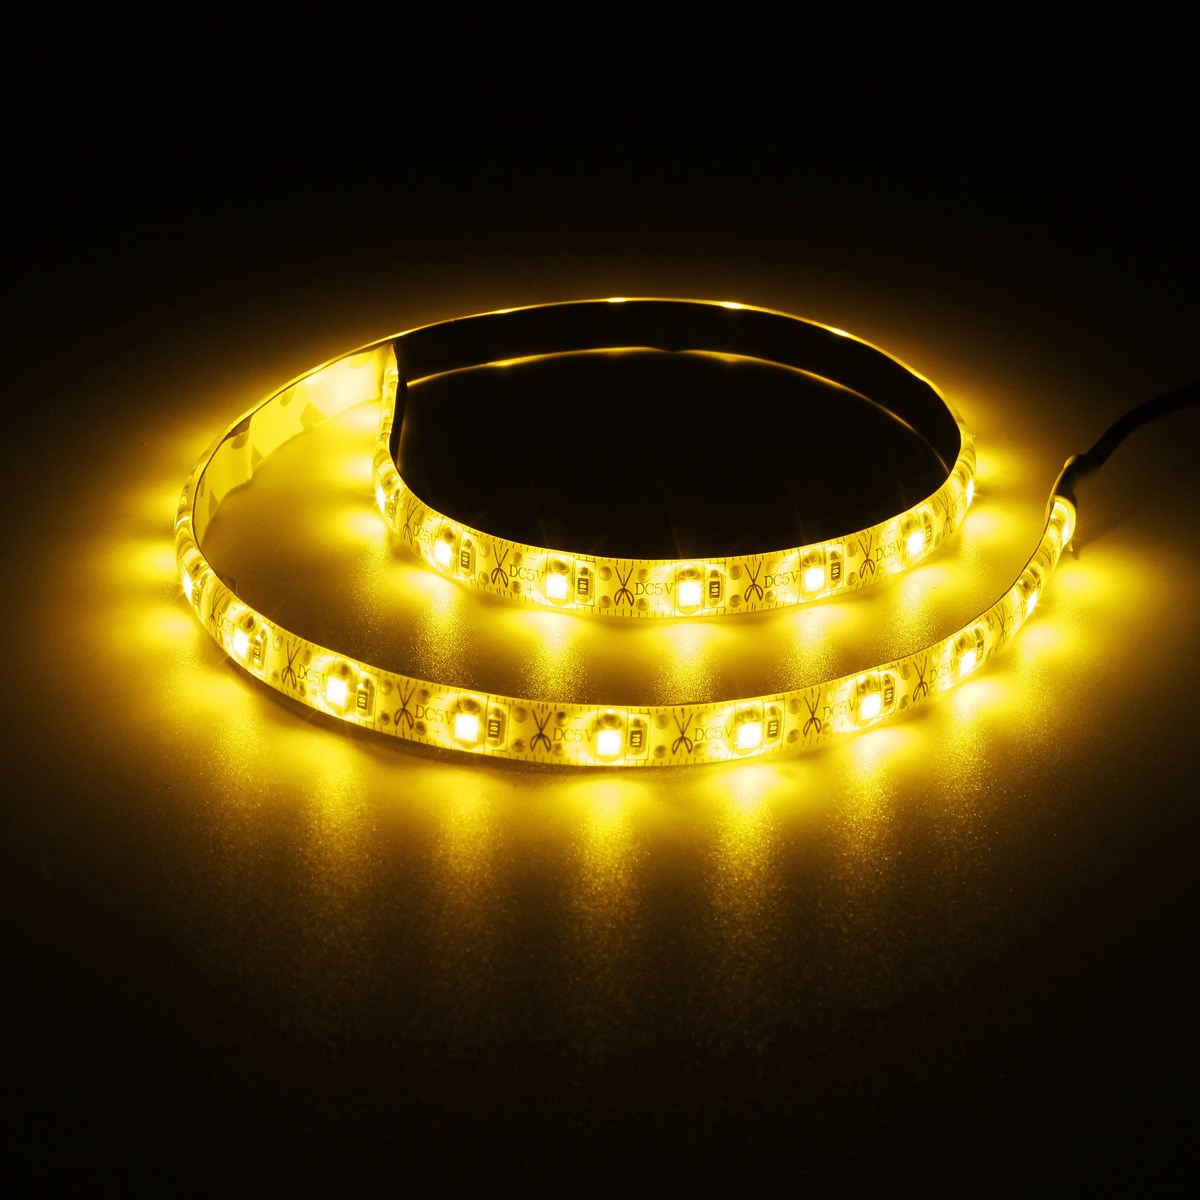 Hot Sale 50cm USB Cable 3528 SMD 30 LED Strip Light Lamp Waterproof IP65 PC TV Background Lighting Kit DC5V(China (Mainland))